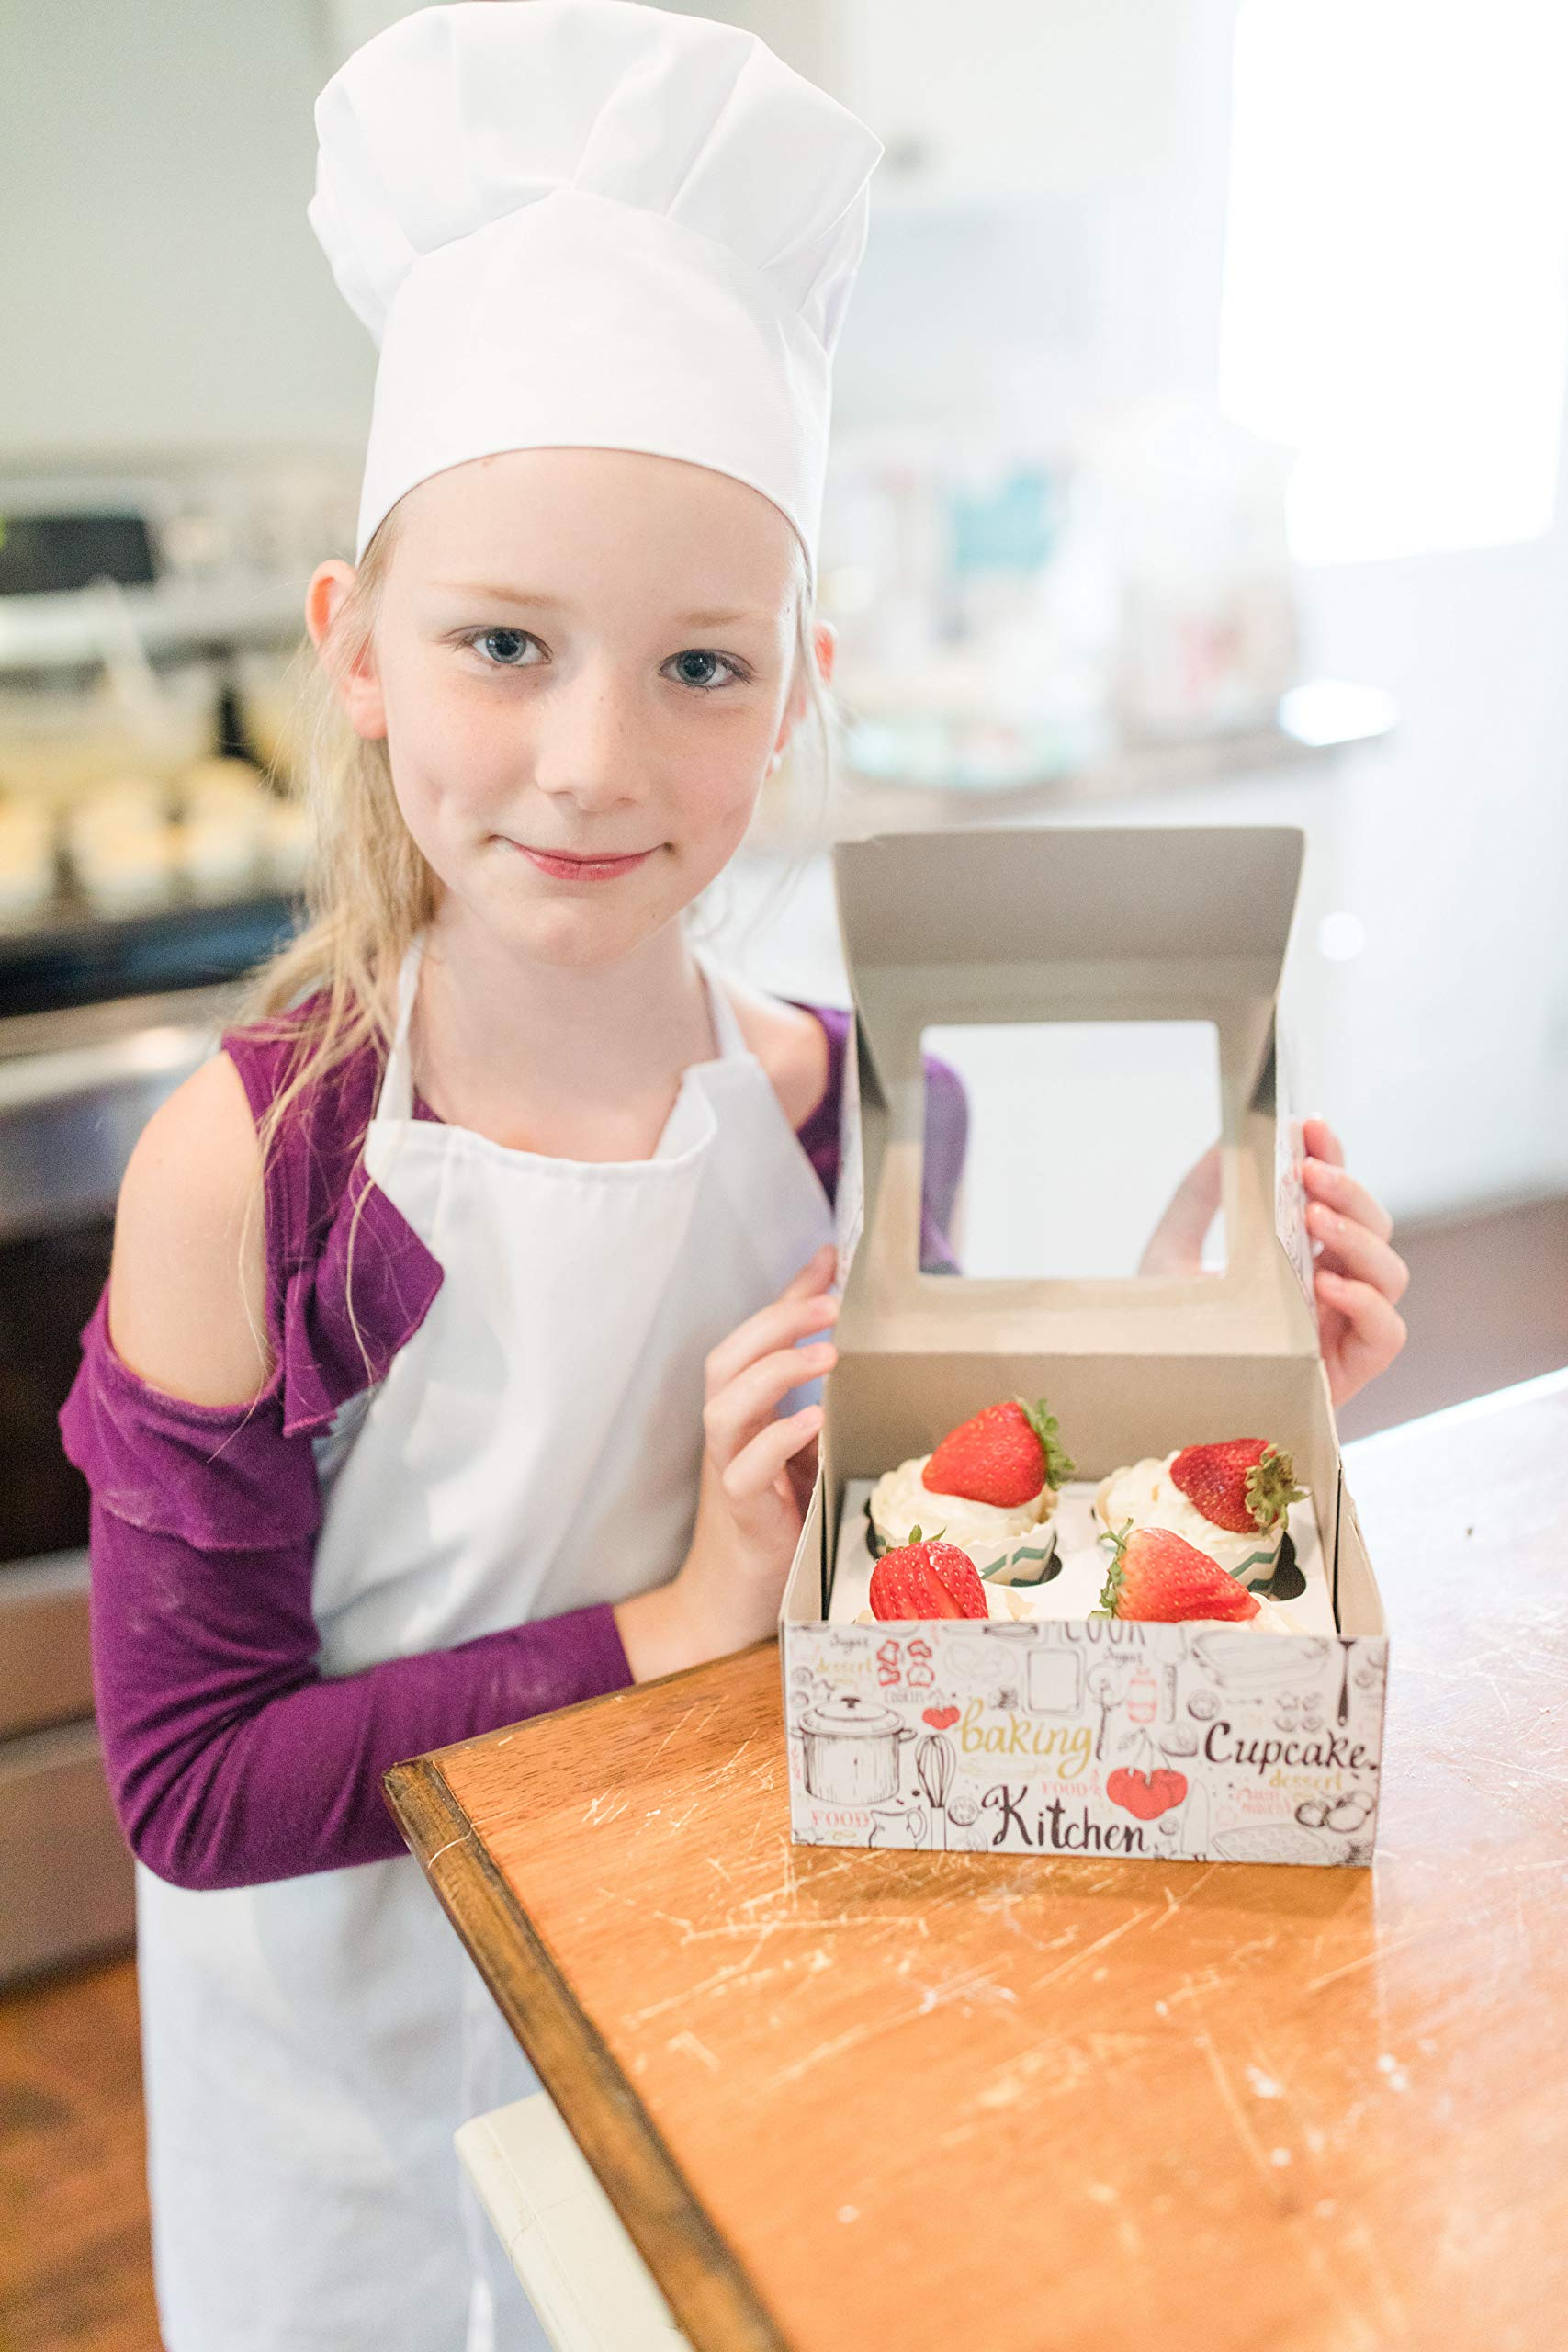 Tessa's Kitchen Kids -Child's Chef Hat Apron Set, Kids Size, Children's Kitchen Cooking and Baking Wear Kit for those Chefs in Training, Size (S 2-5 Year, Black) by Odelia (Image #4)